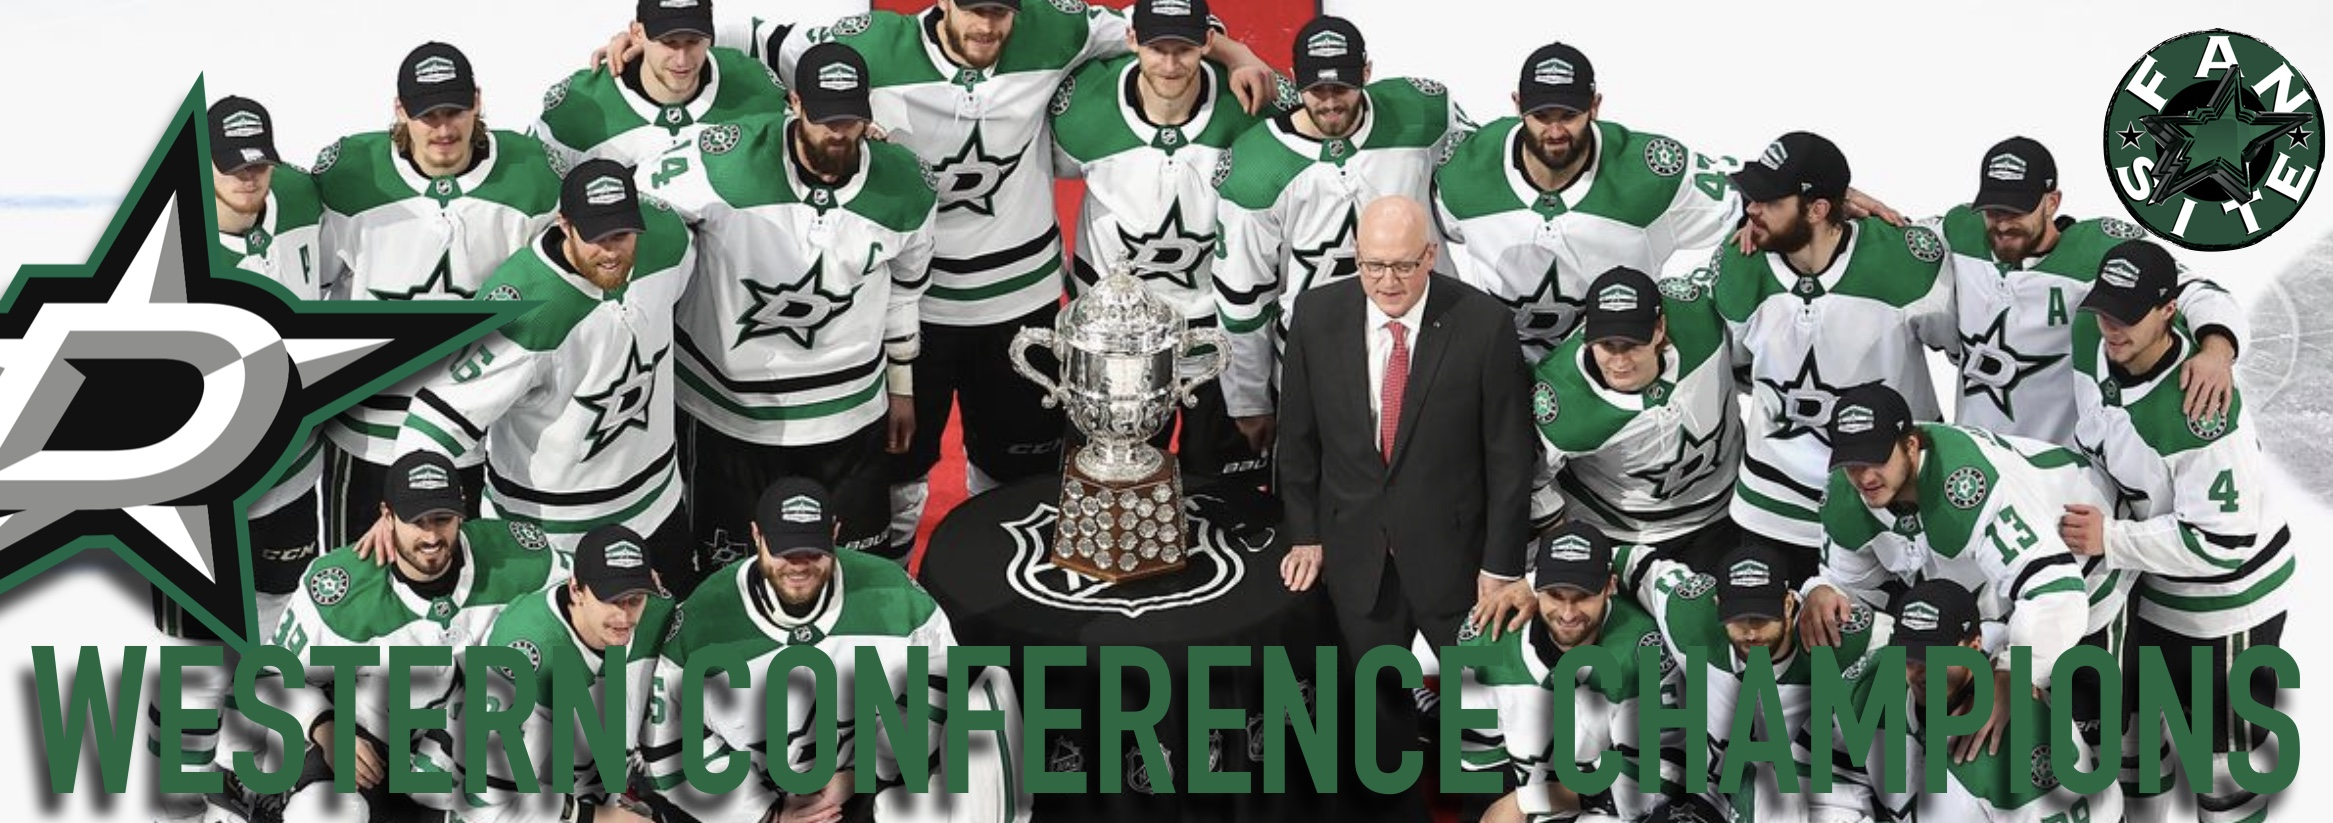 How are we feeling today Stars fans??